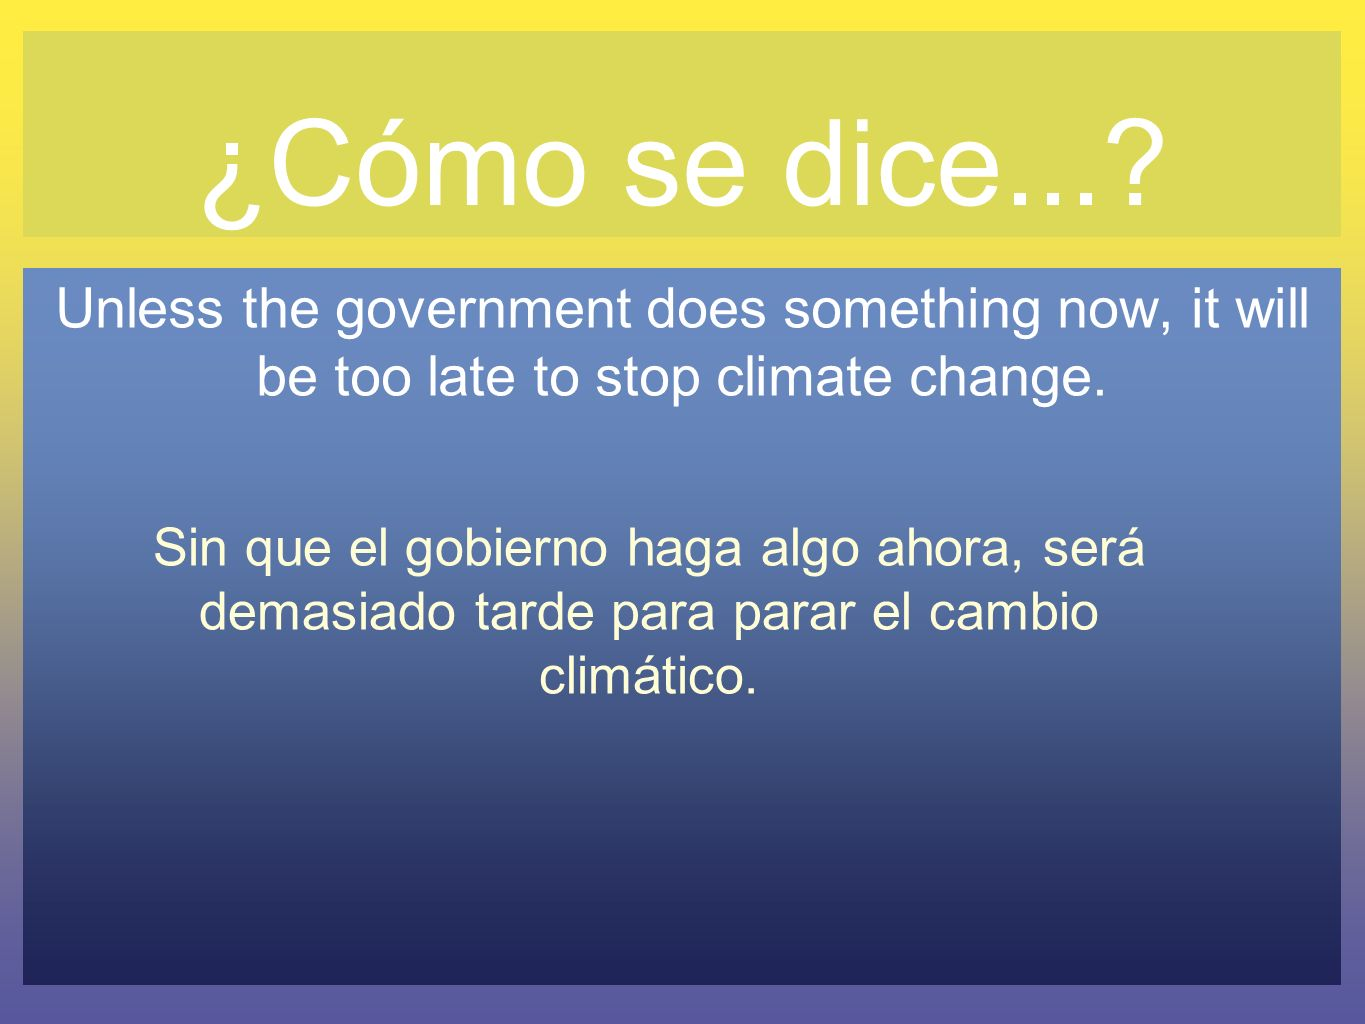 ¿Cómo se dice... Unless the government does something now, it will be too late to stop climate change.